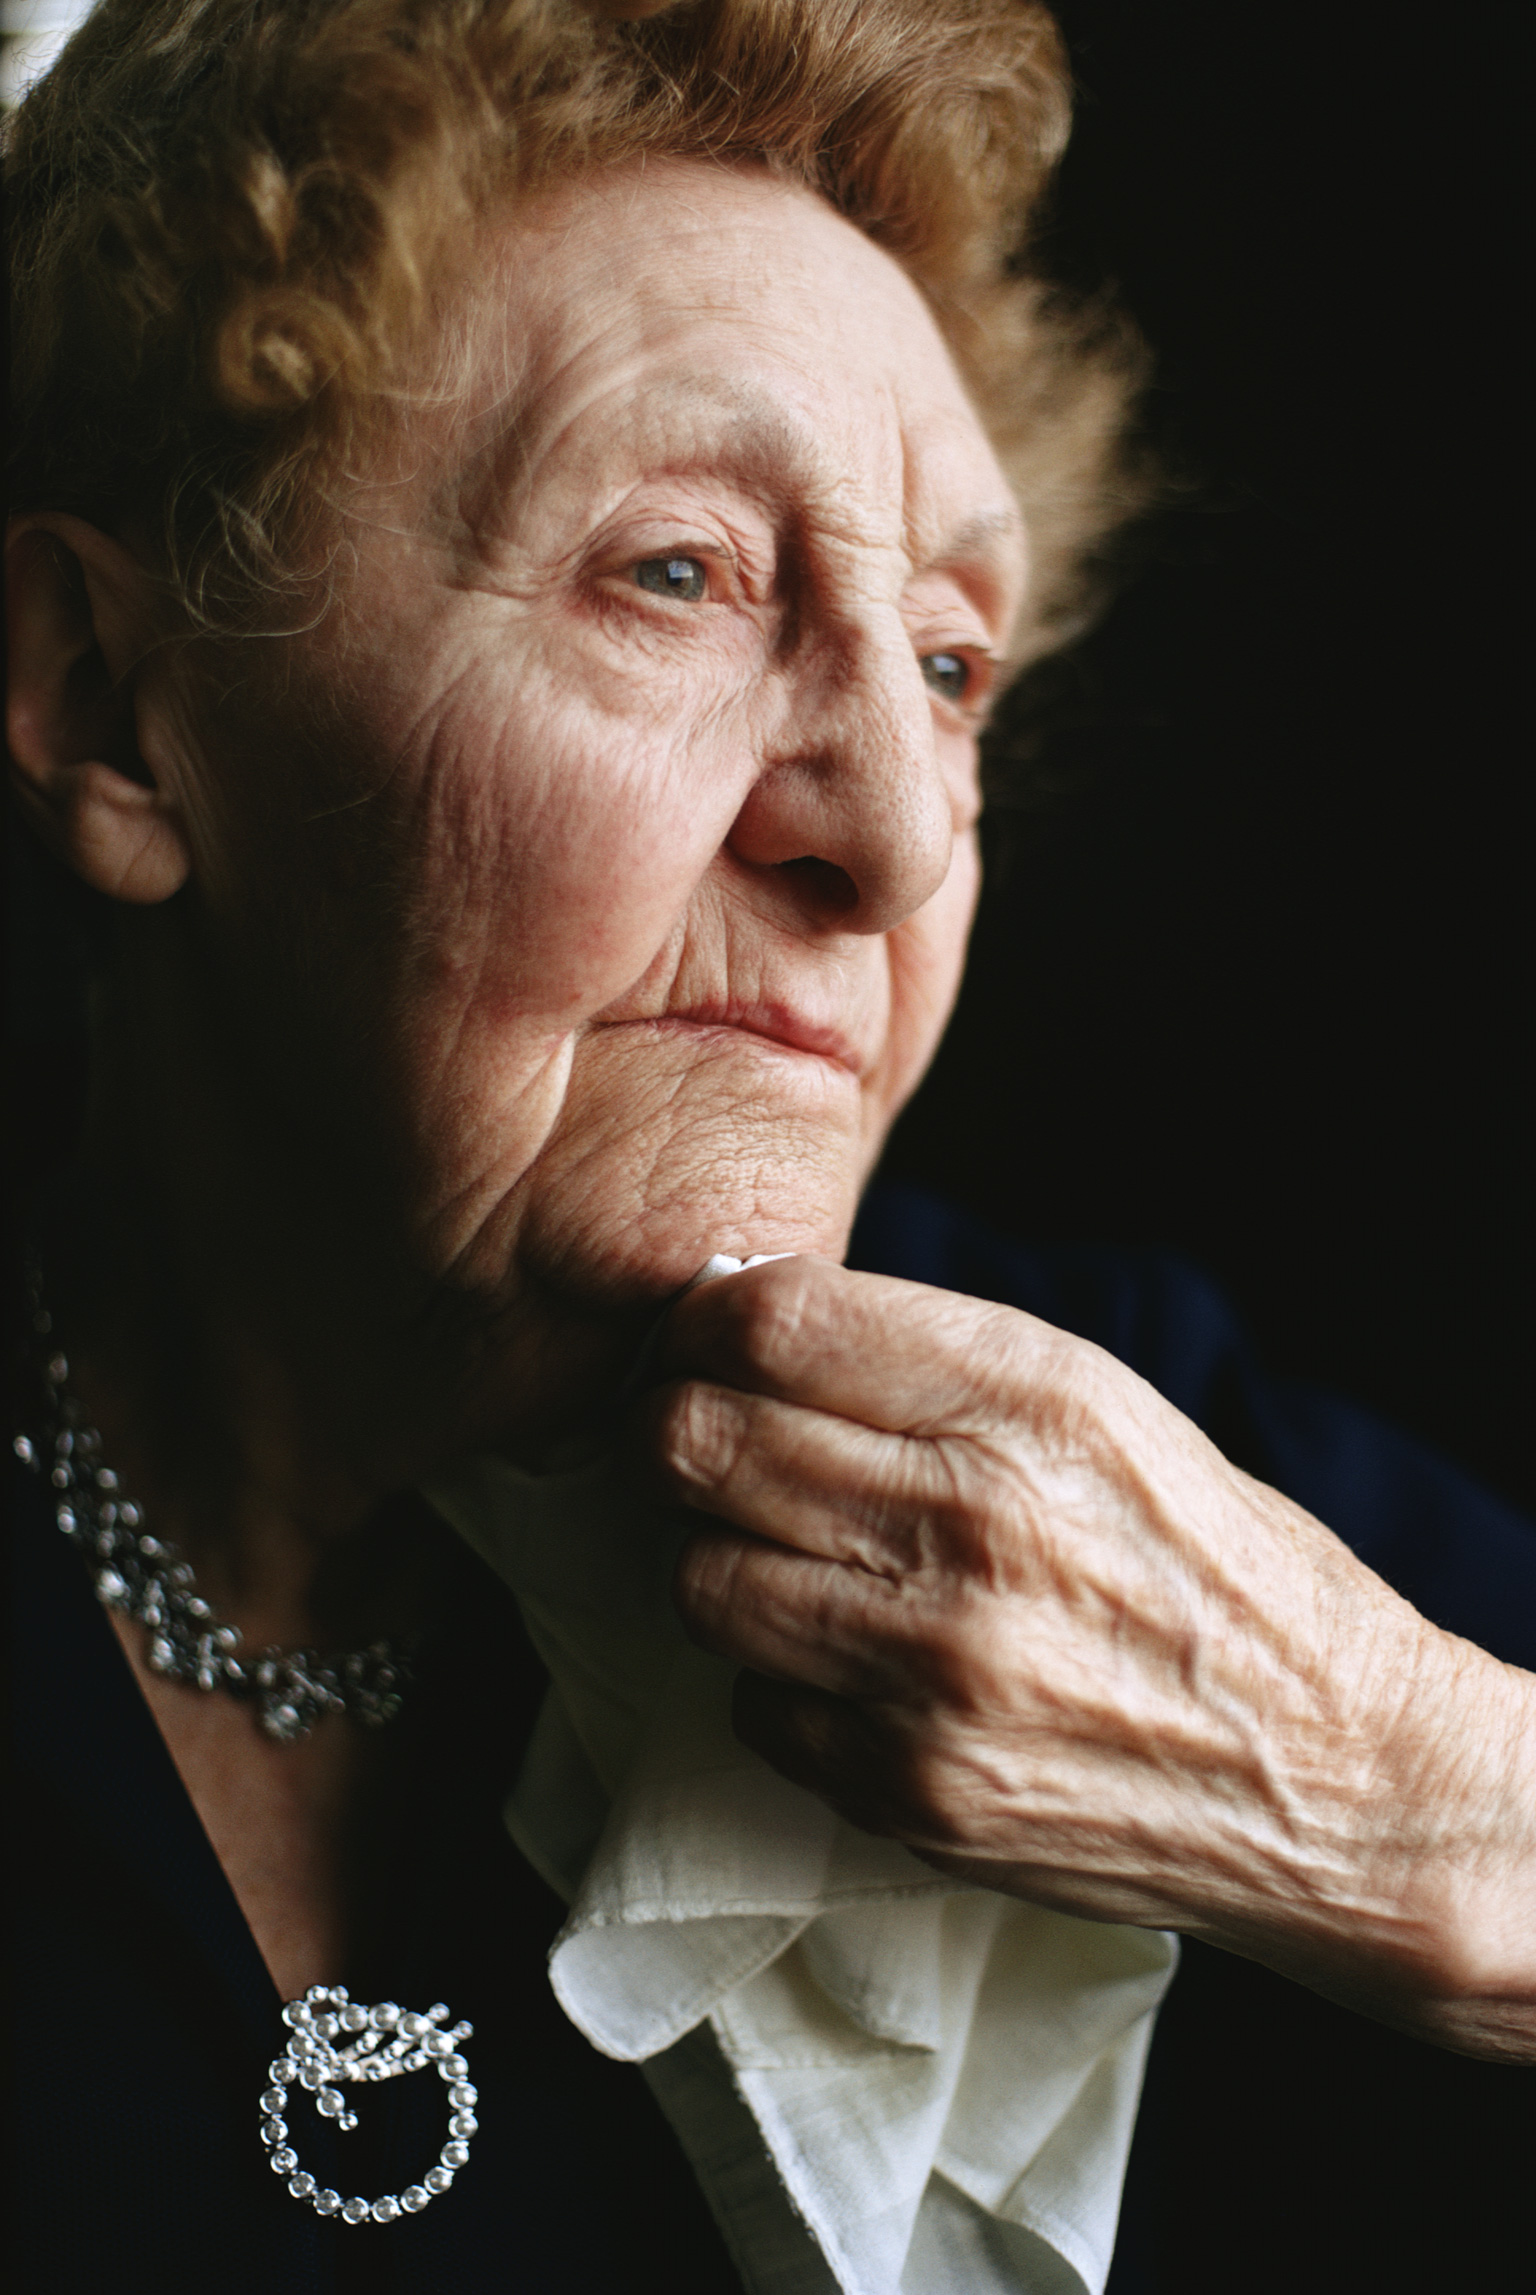 Reasons a Nursing Home Can Legally Evict You